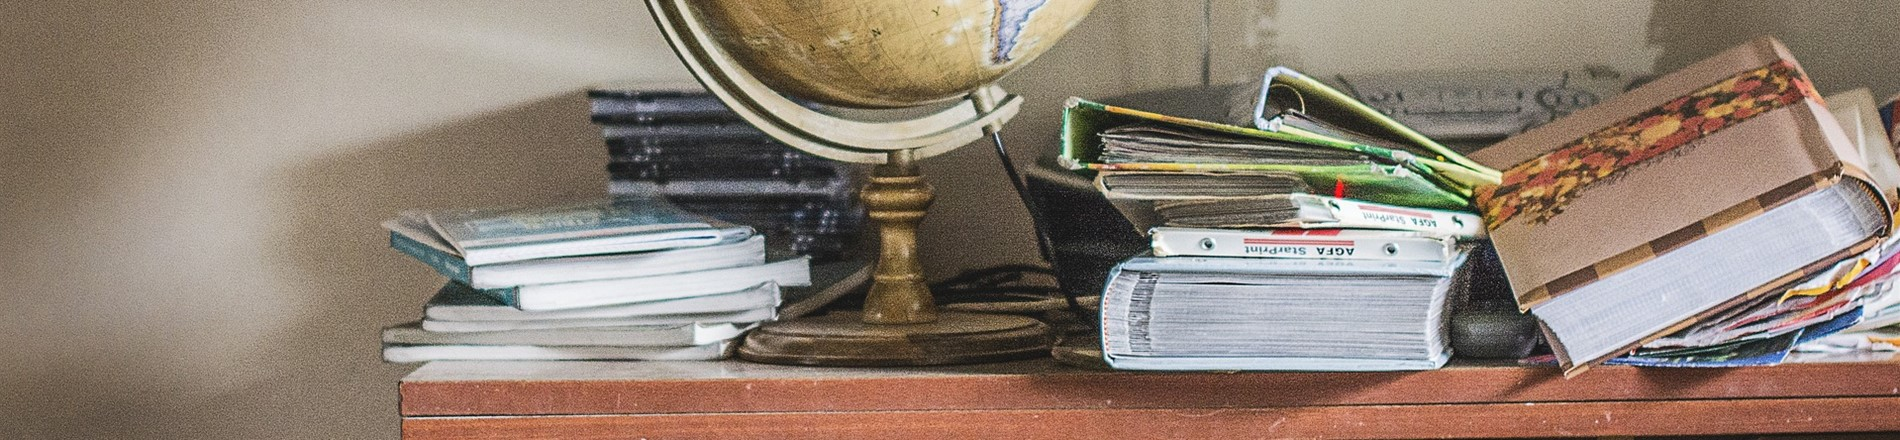 Picture of globe and books on table.